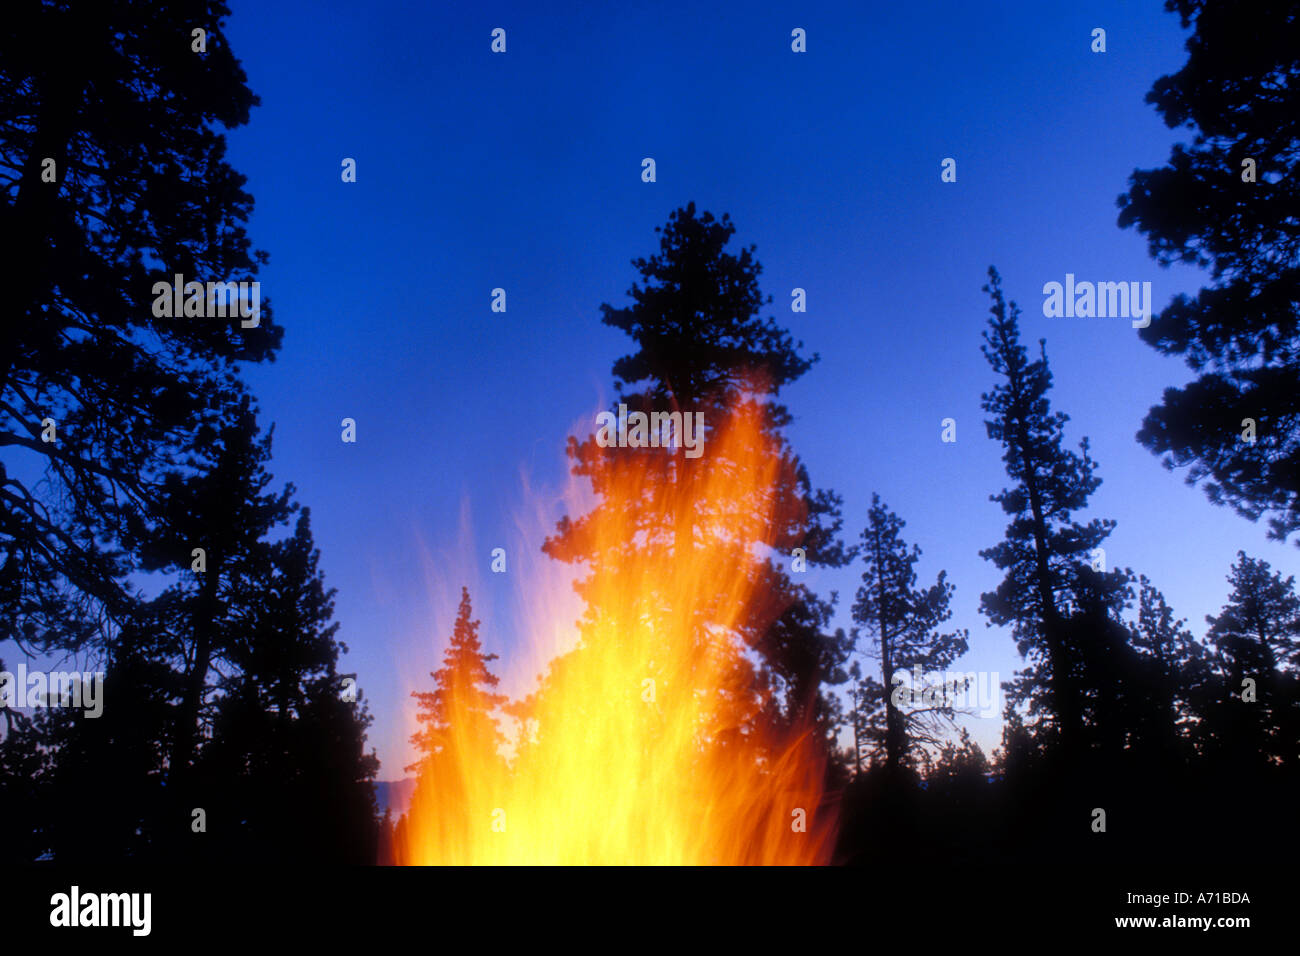 Pine forrest at dusk with flames in foreground - Stock Image